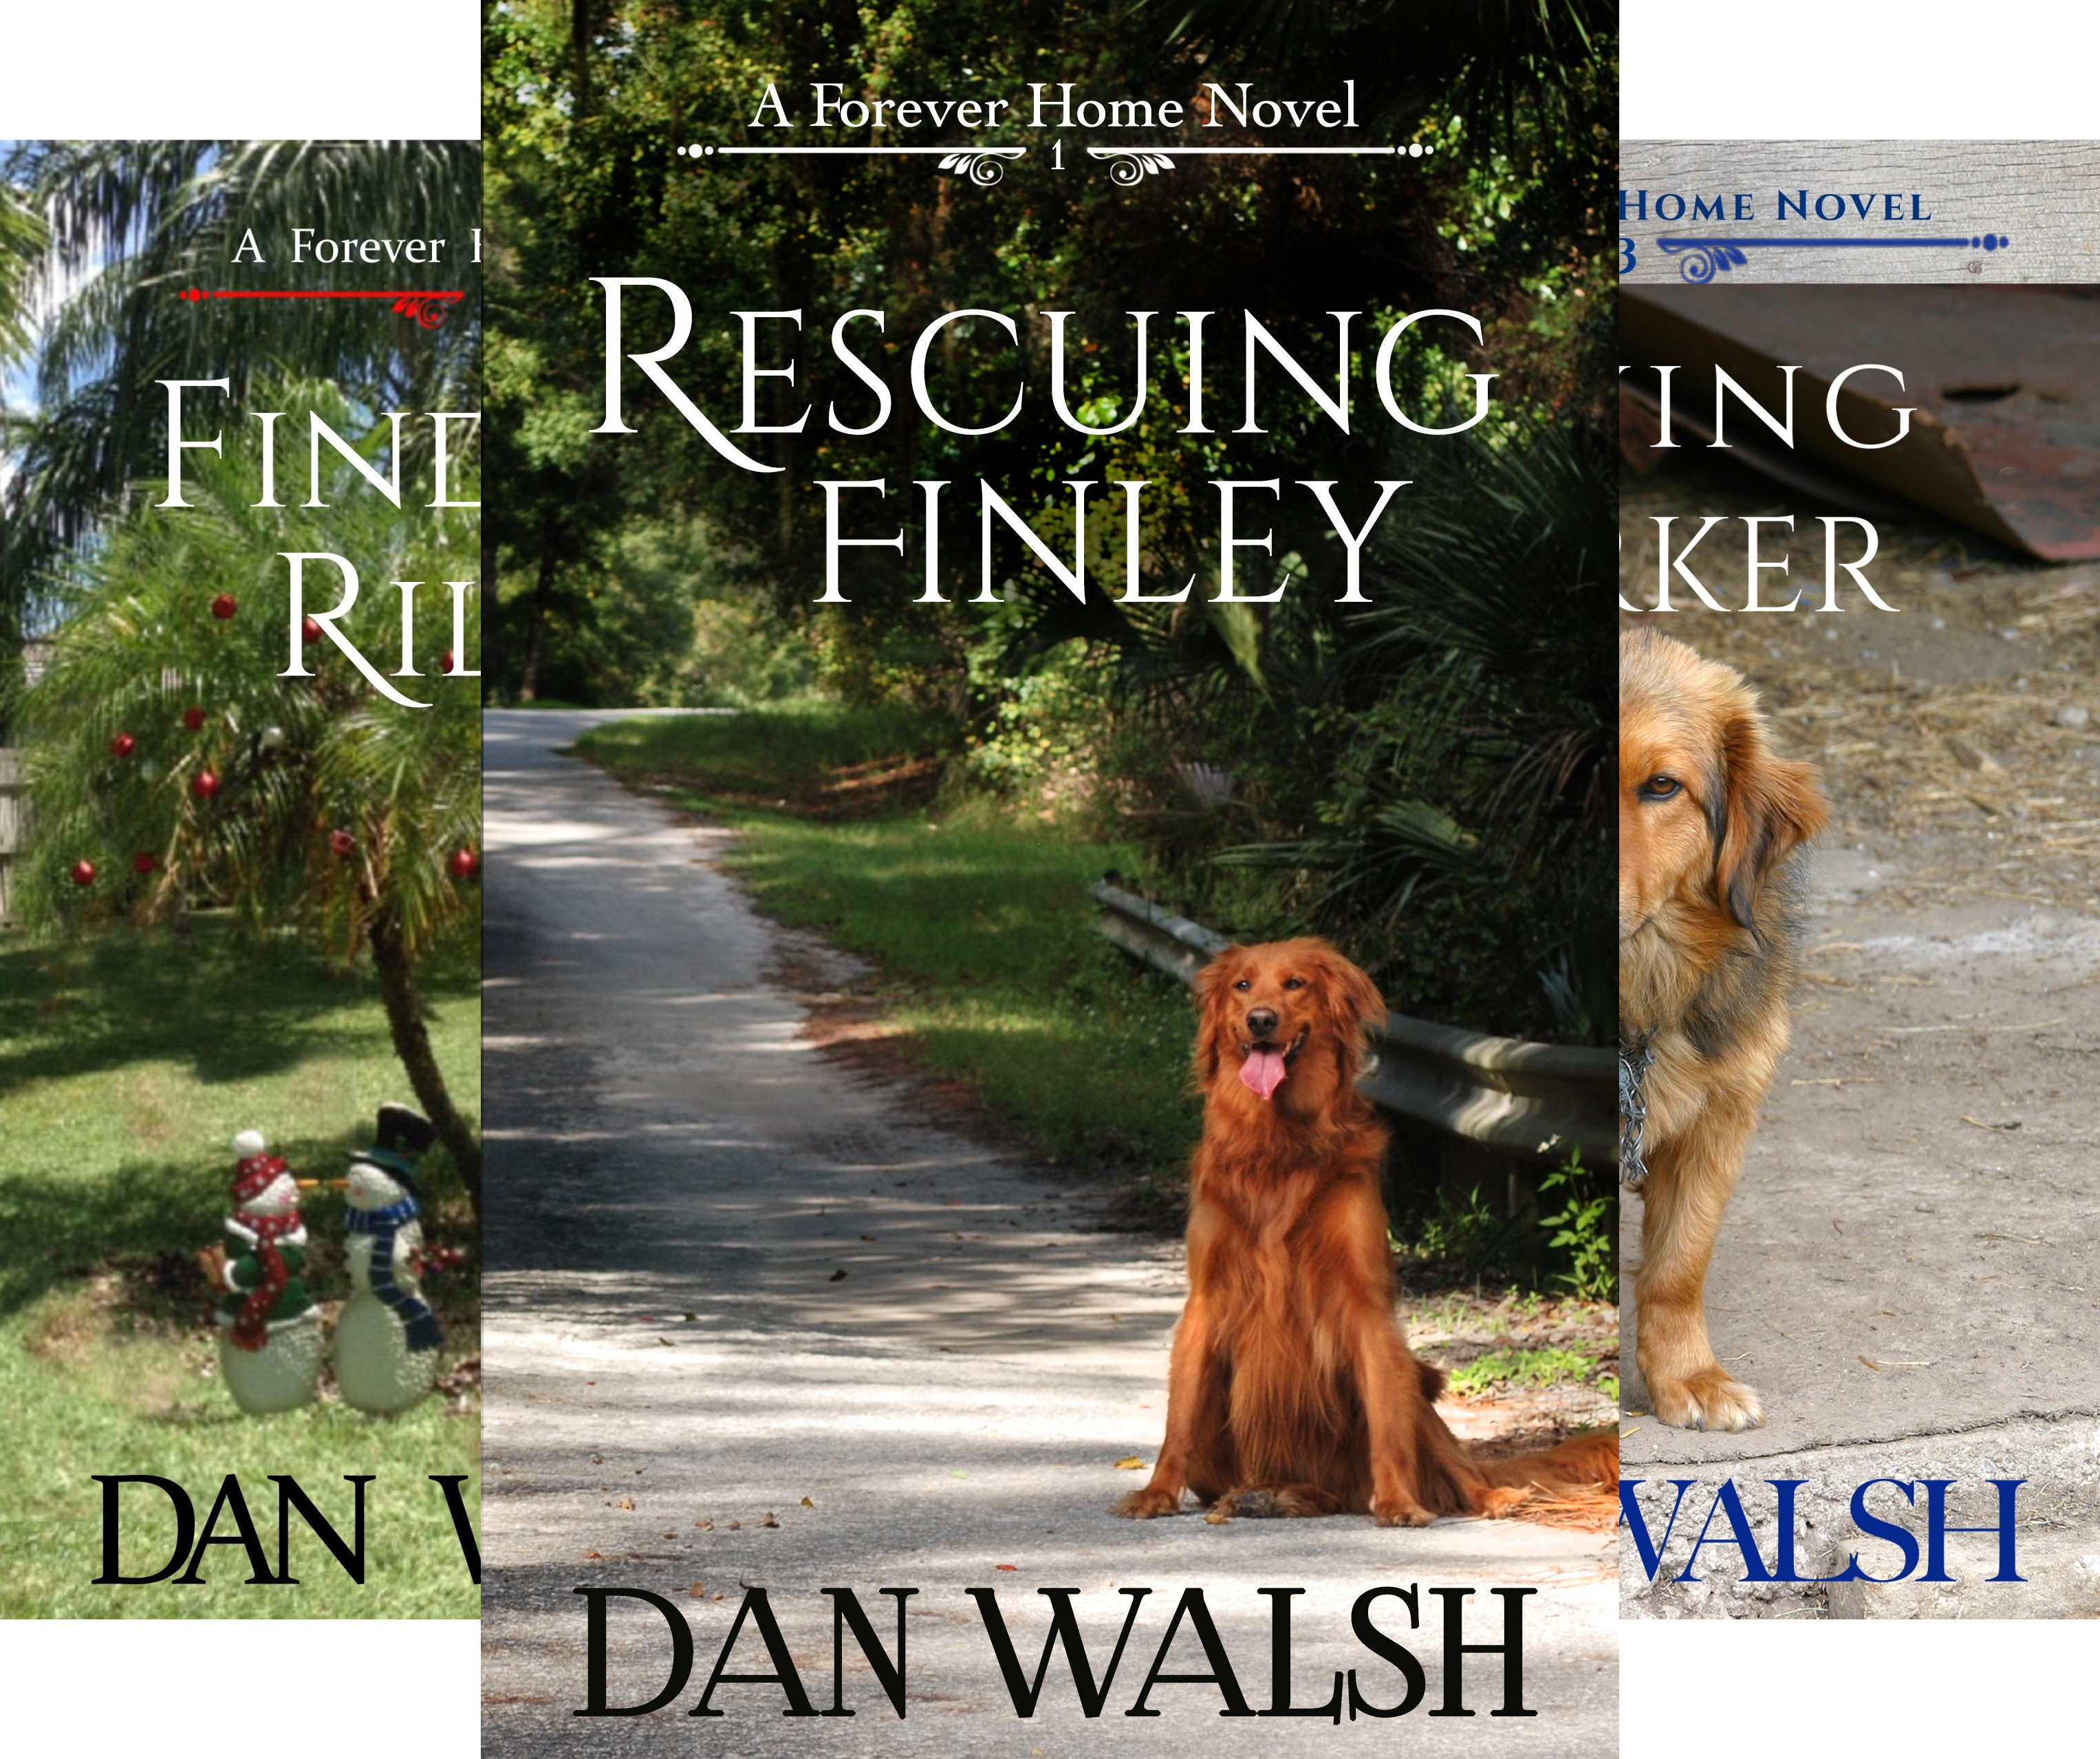 A Forever Home Novel (3 Book Series)